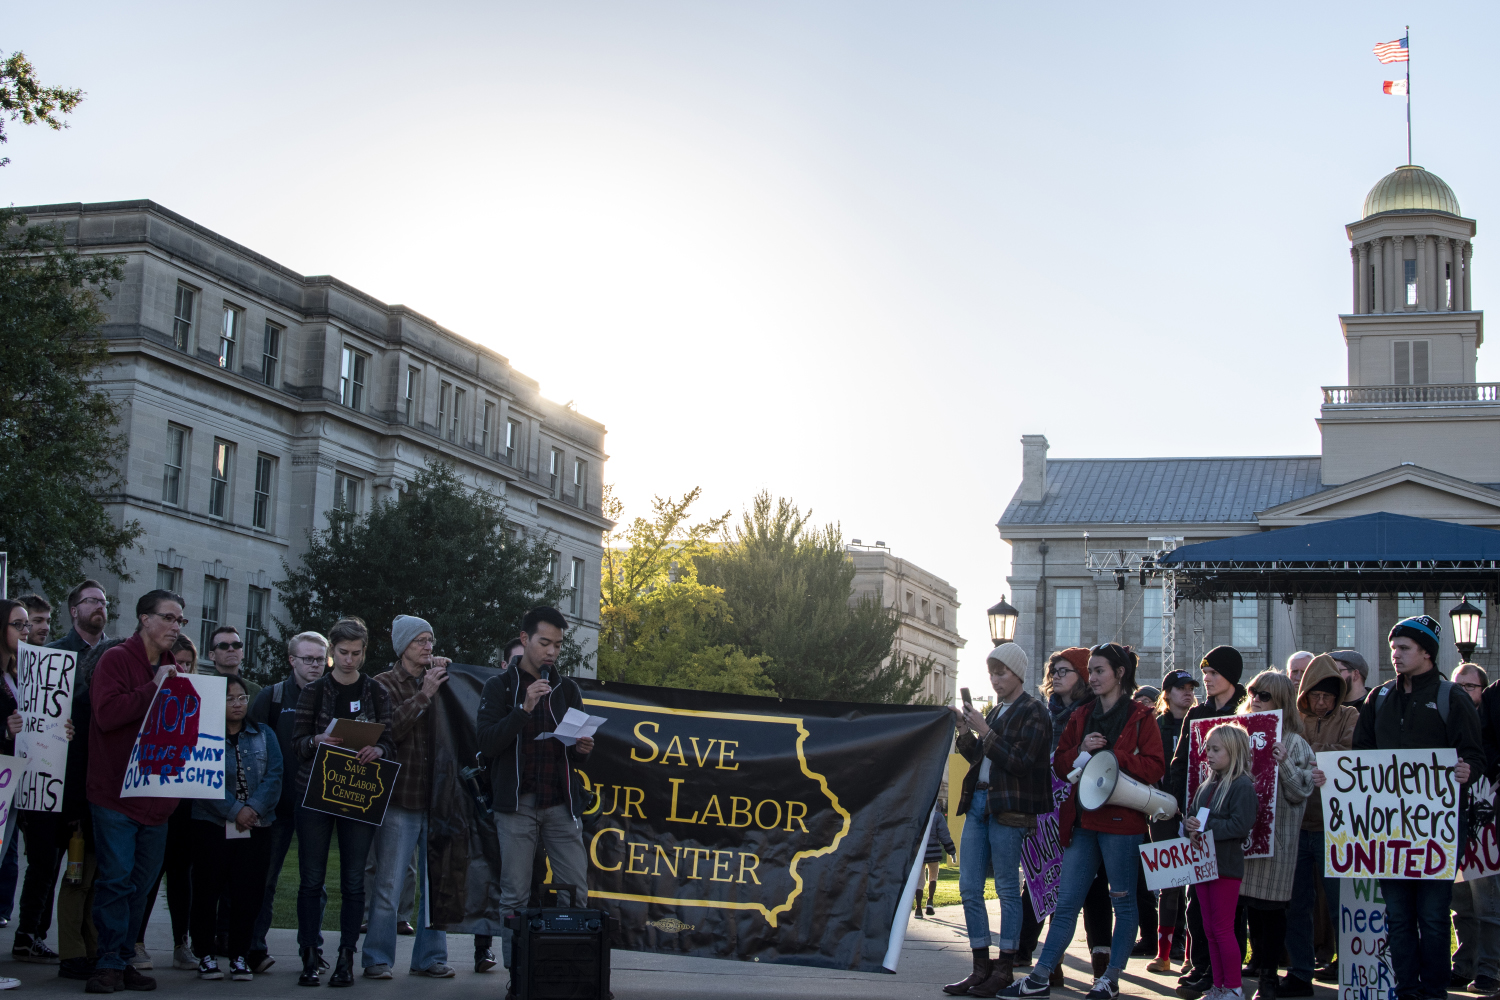 Community+members+gather+on+the+Pentacrest+to+protest+the+closing+of+the+Labor+Center+on+Wednesday%2C+October+17%2C+2018.+